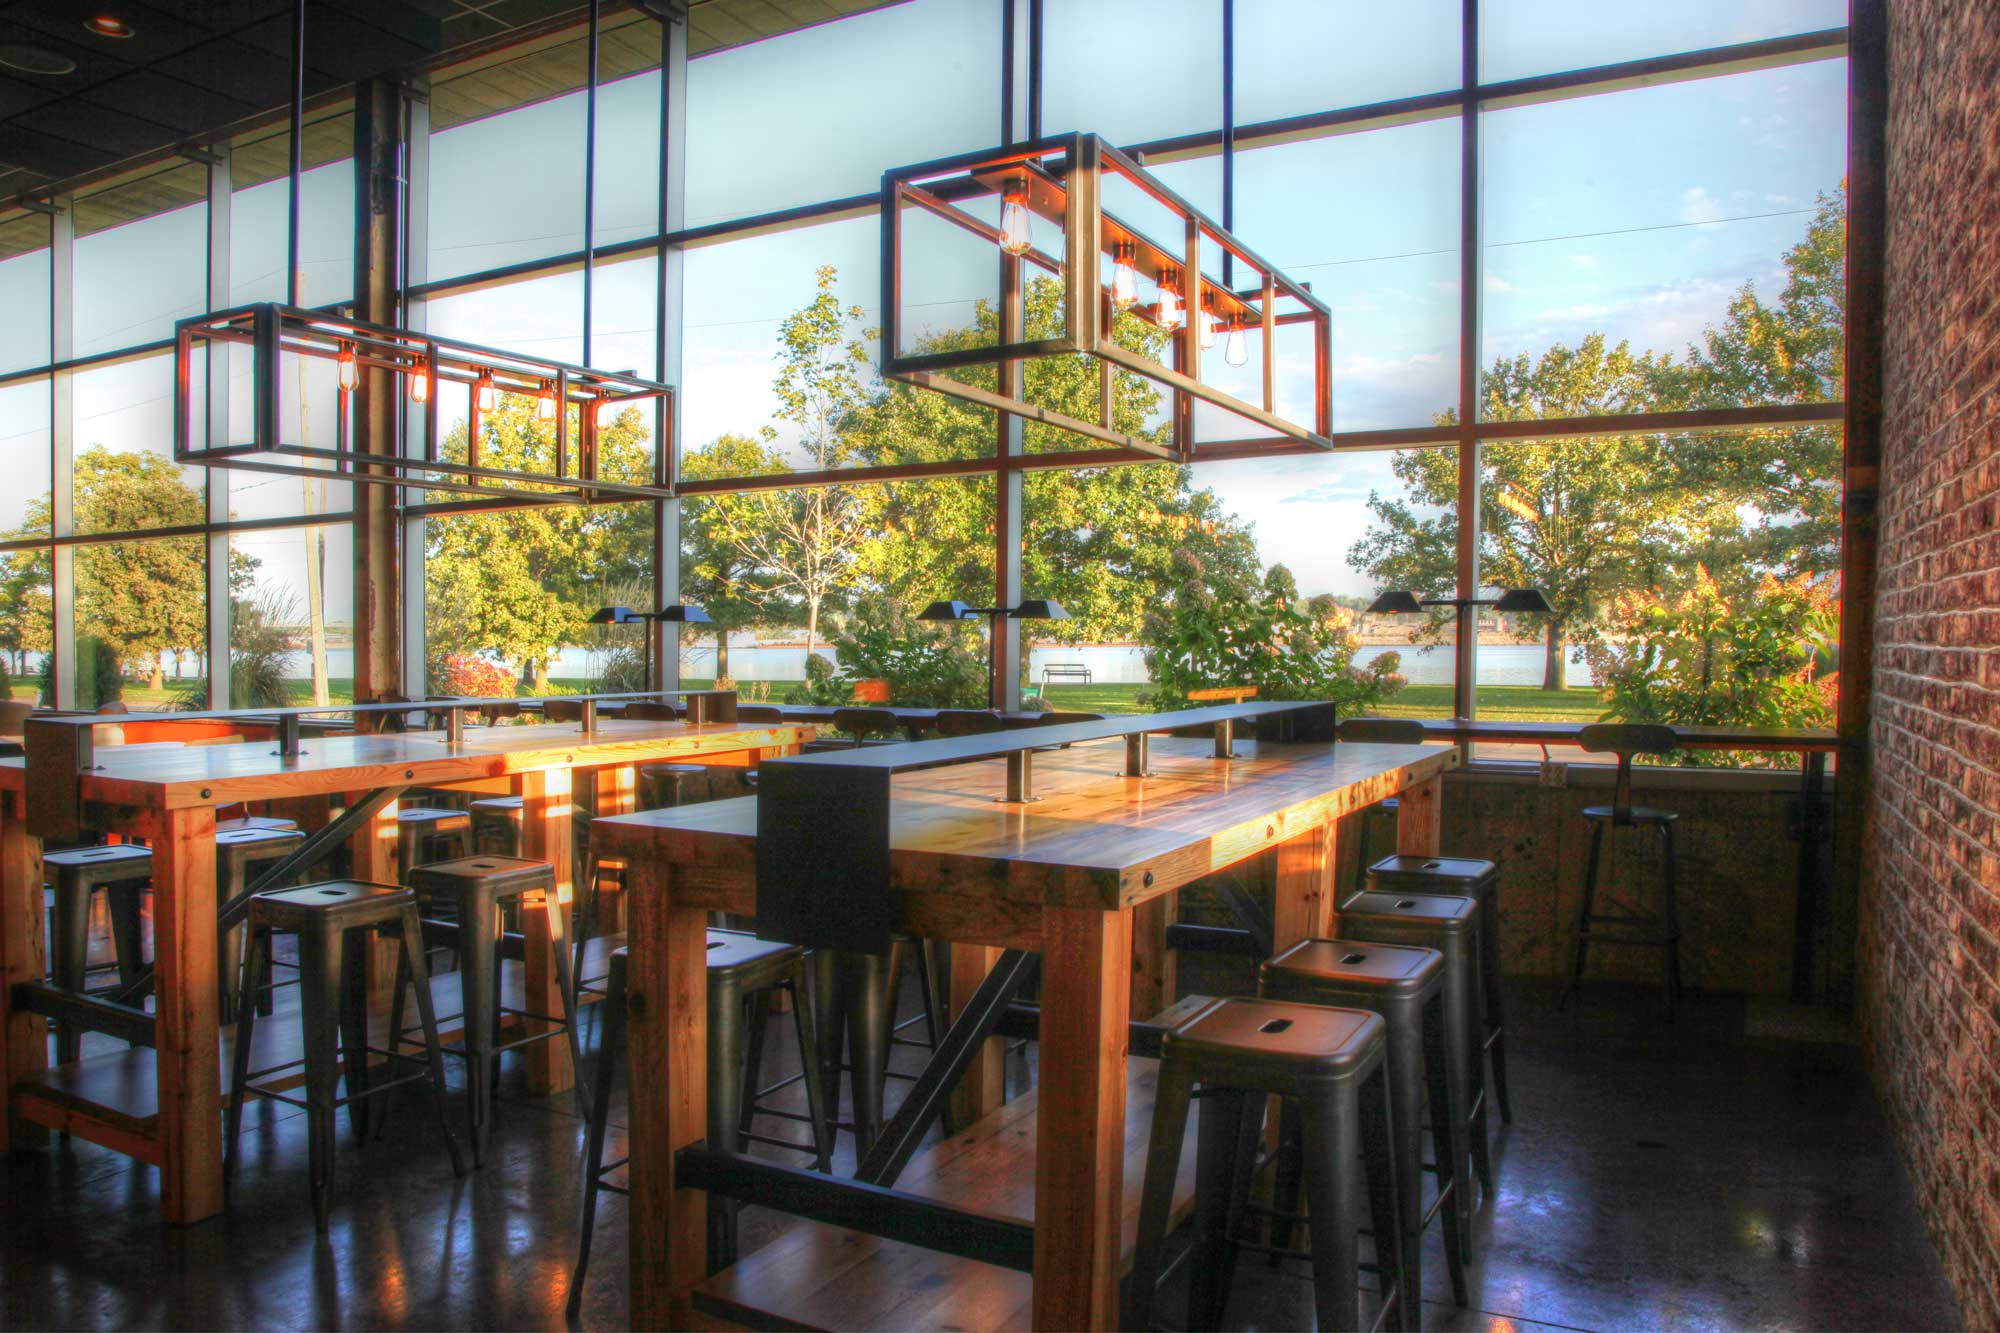 Feature of Milltown coffee inside view showcasing seating and lighting